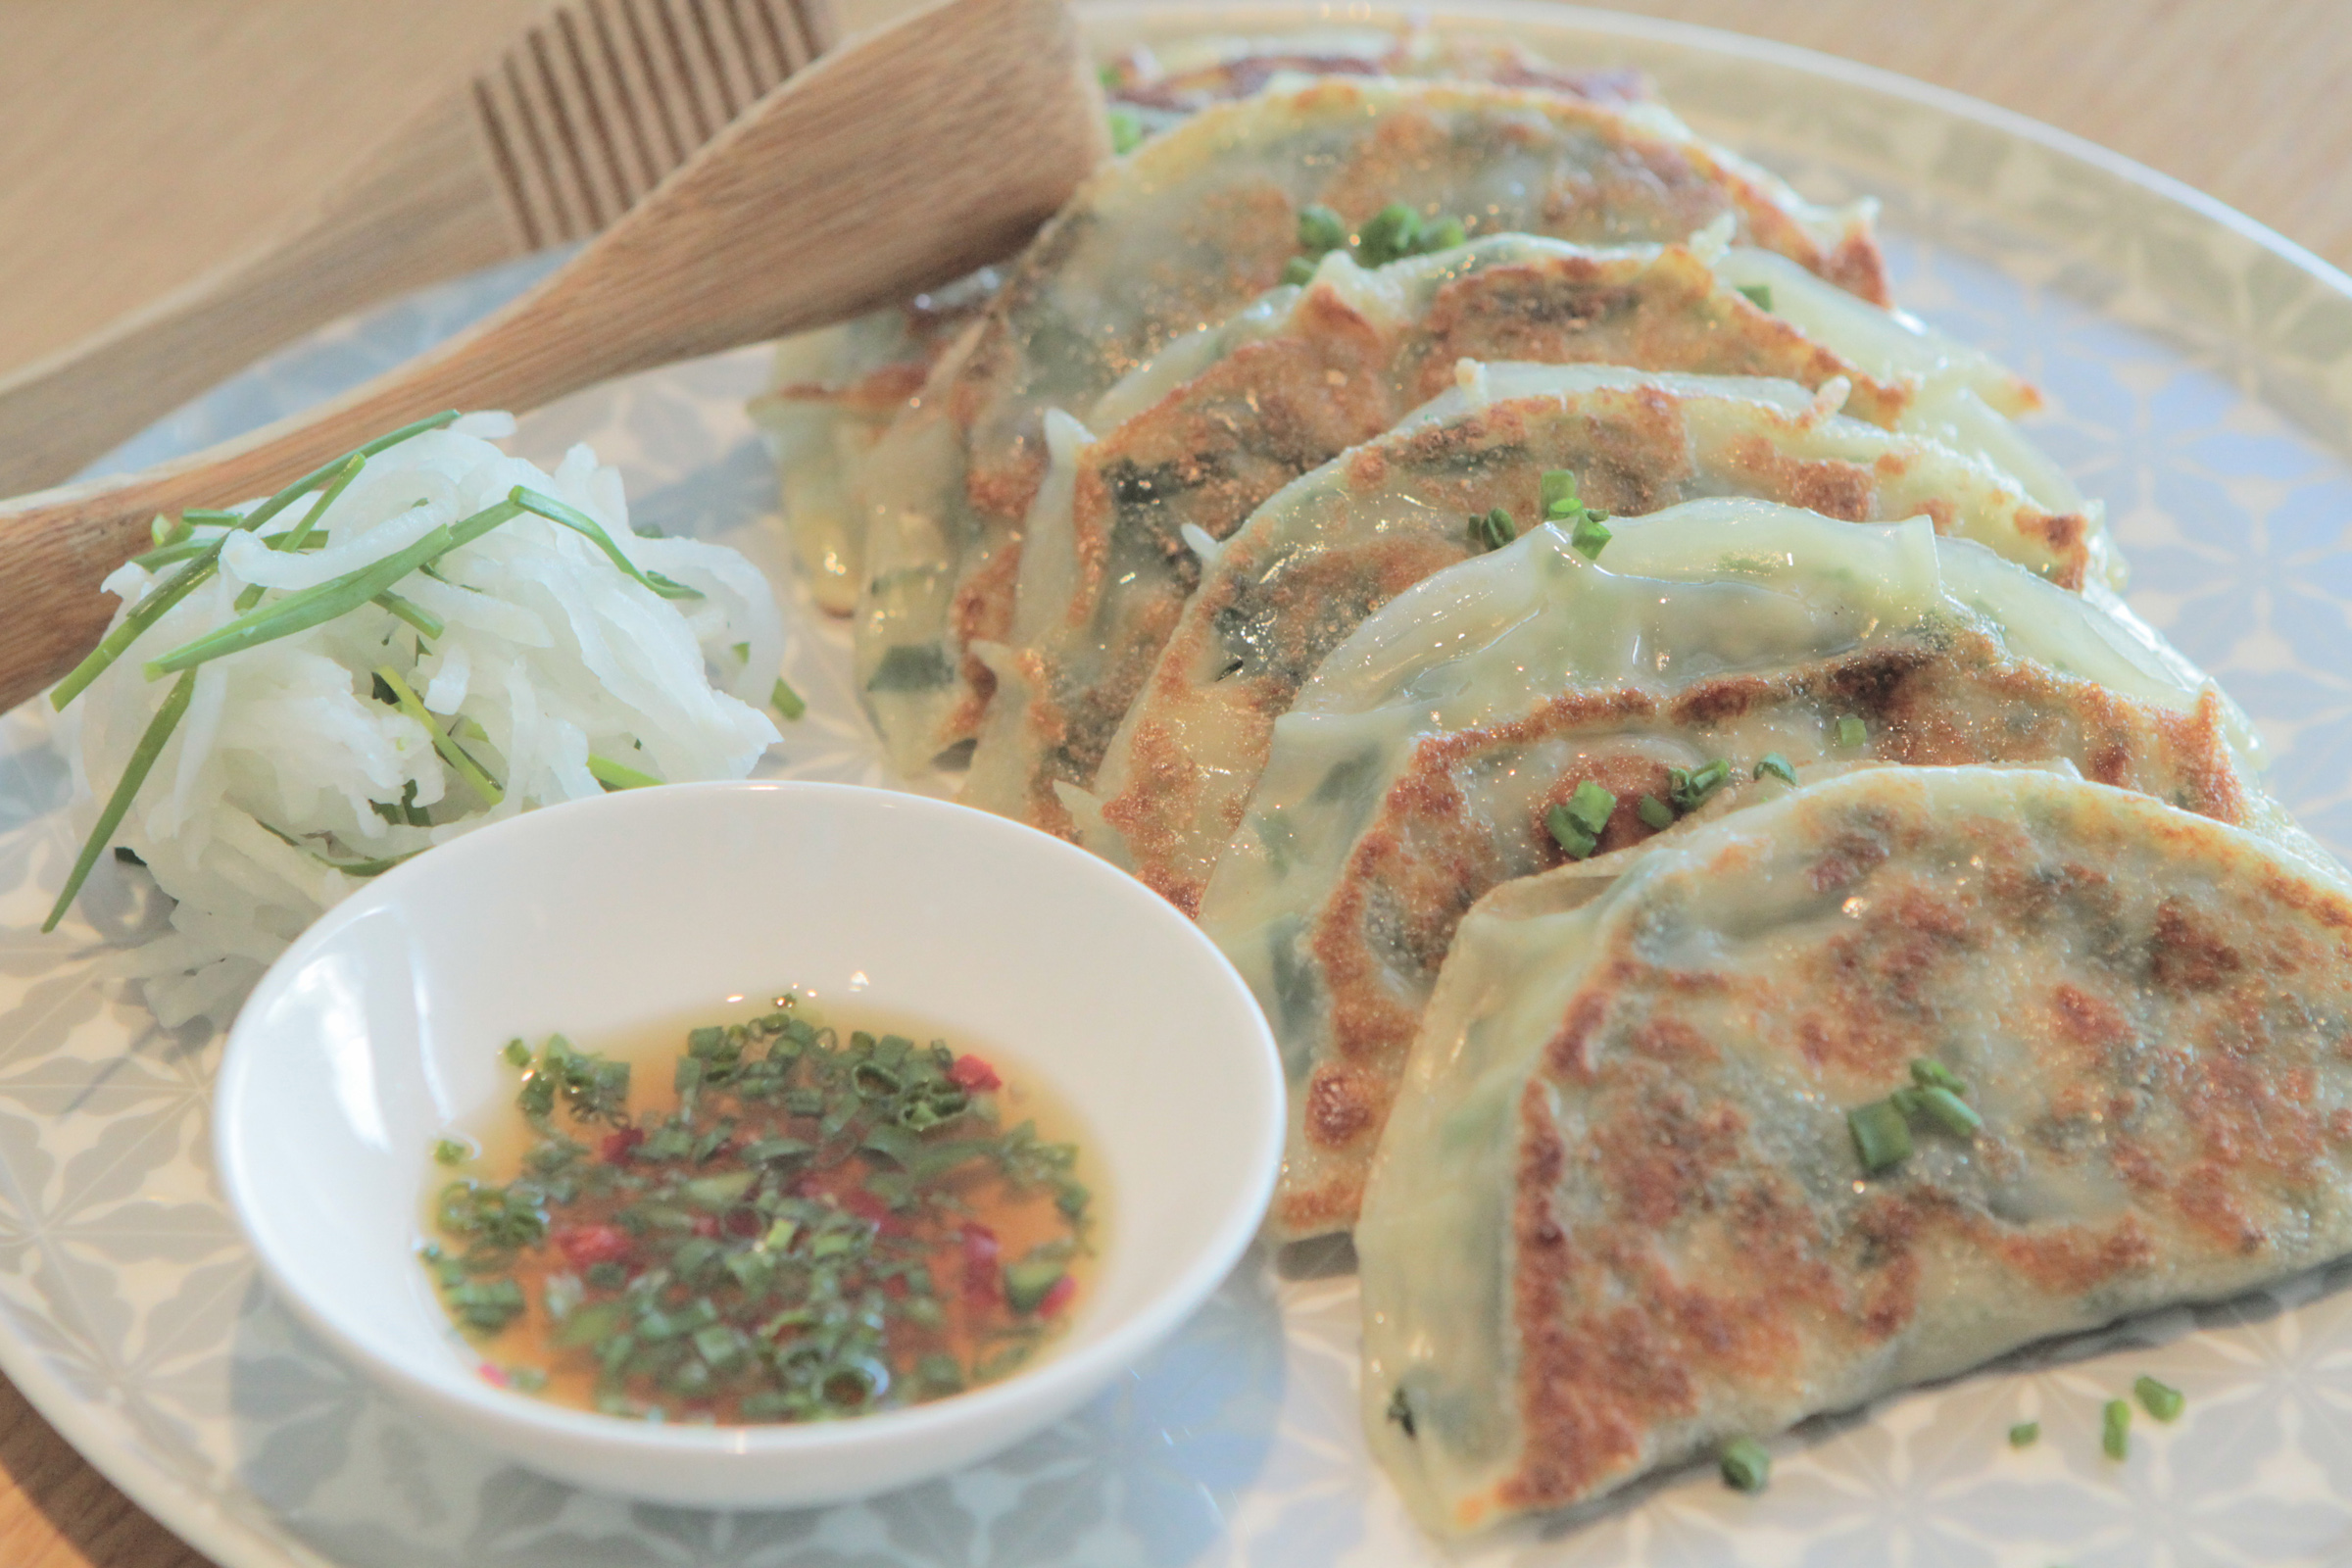 ... dumplings steamed mandu korean dumplings pan fried korean dumplings